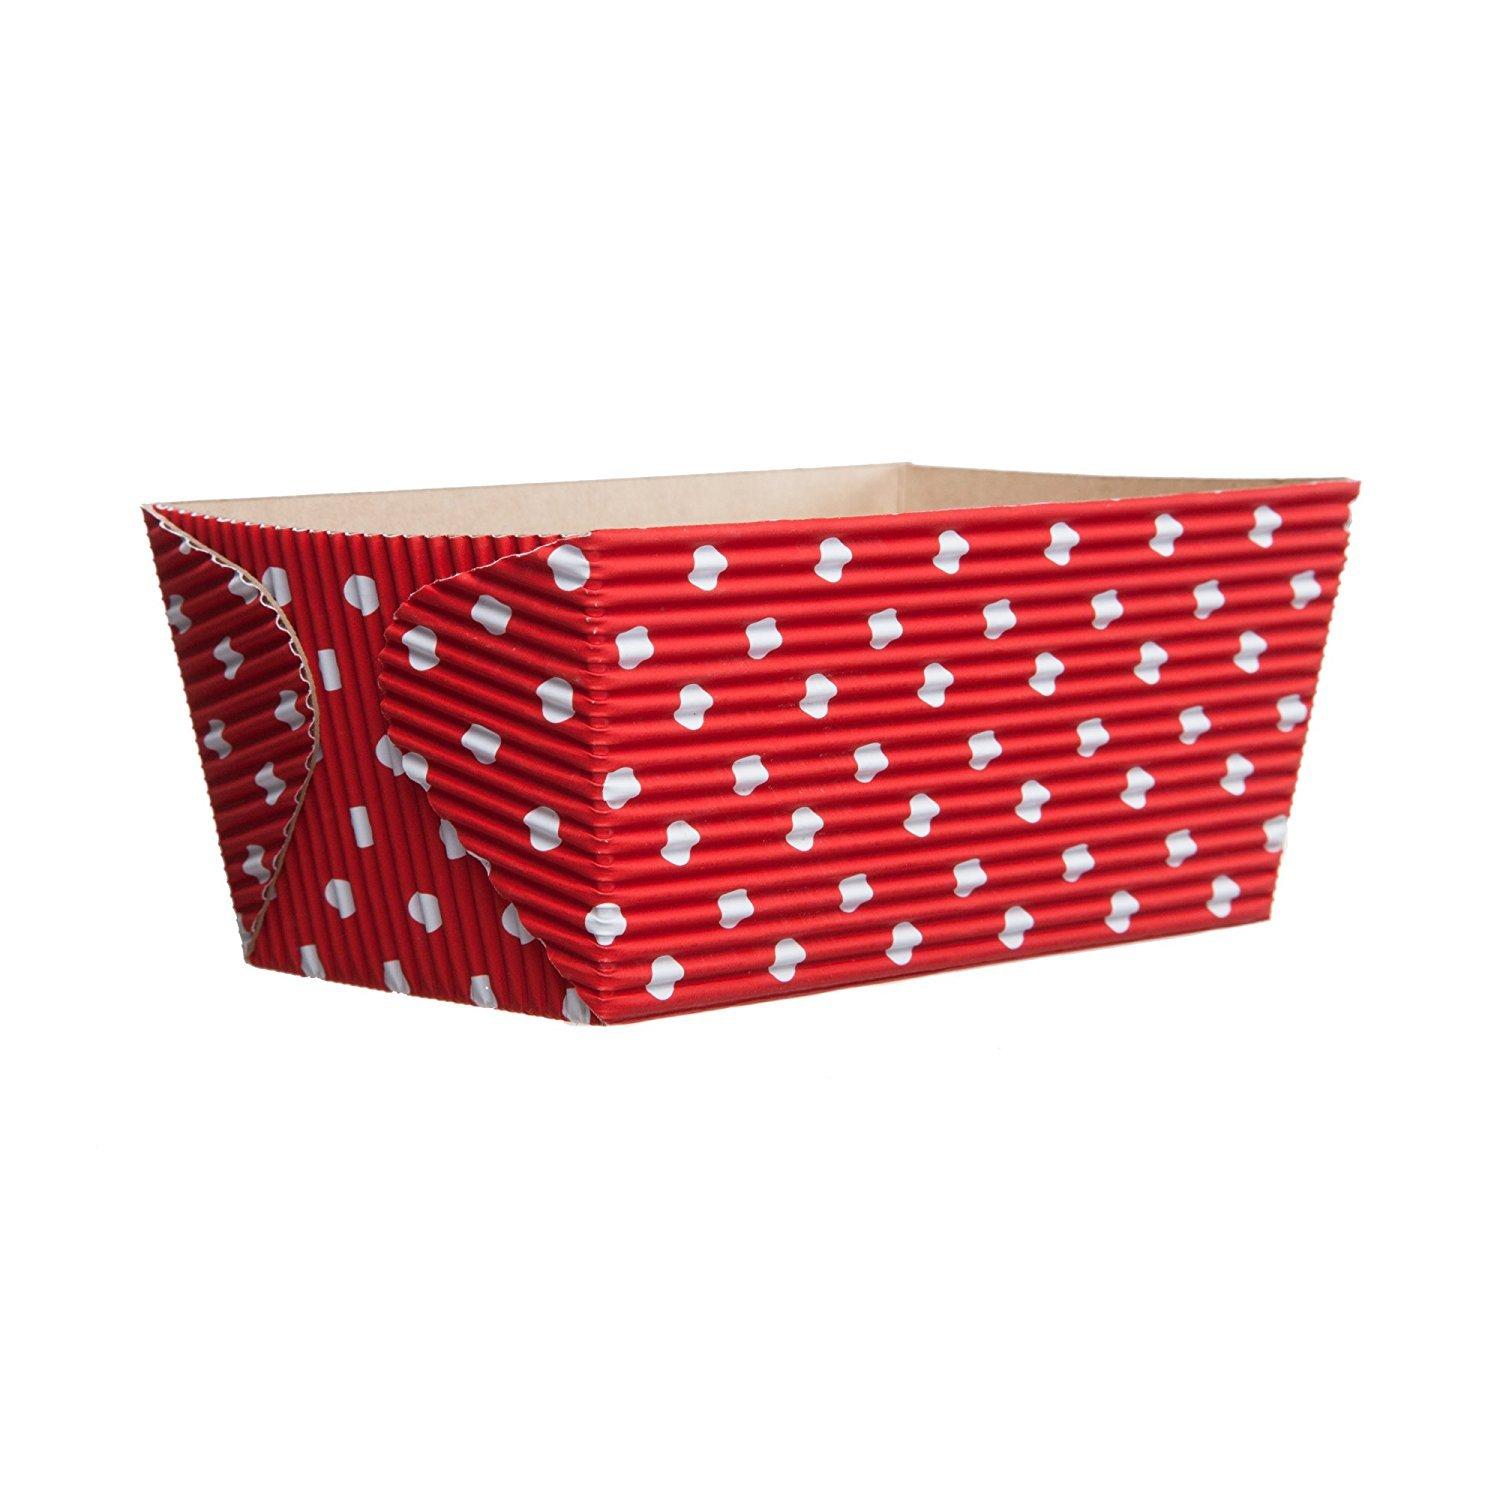 Welcome Home Brands CT8220 Red-with-White-Dots Rectangular Loaf Baking Pan 15.5 Ounce Volume, 4.5 Inch x 2.5 Inch x 2.3 Inch High - Pack of 50